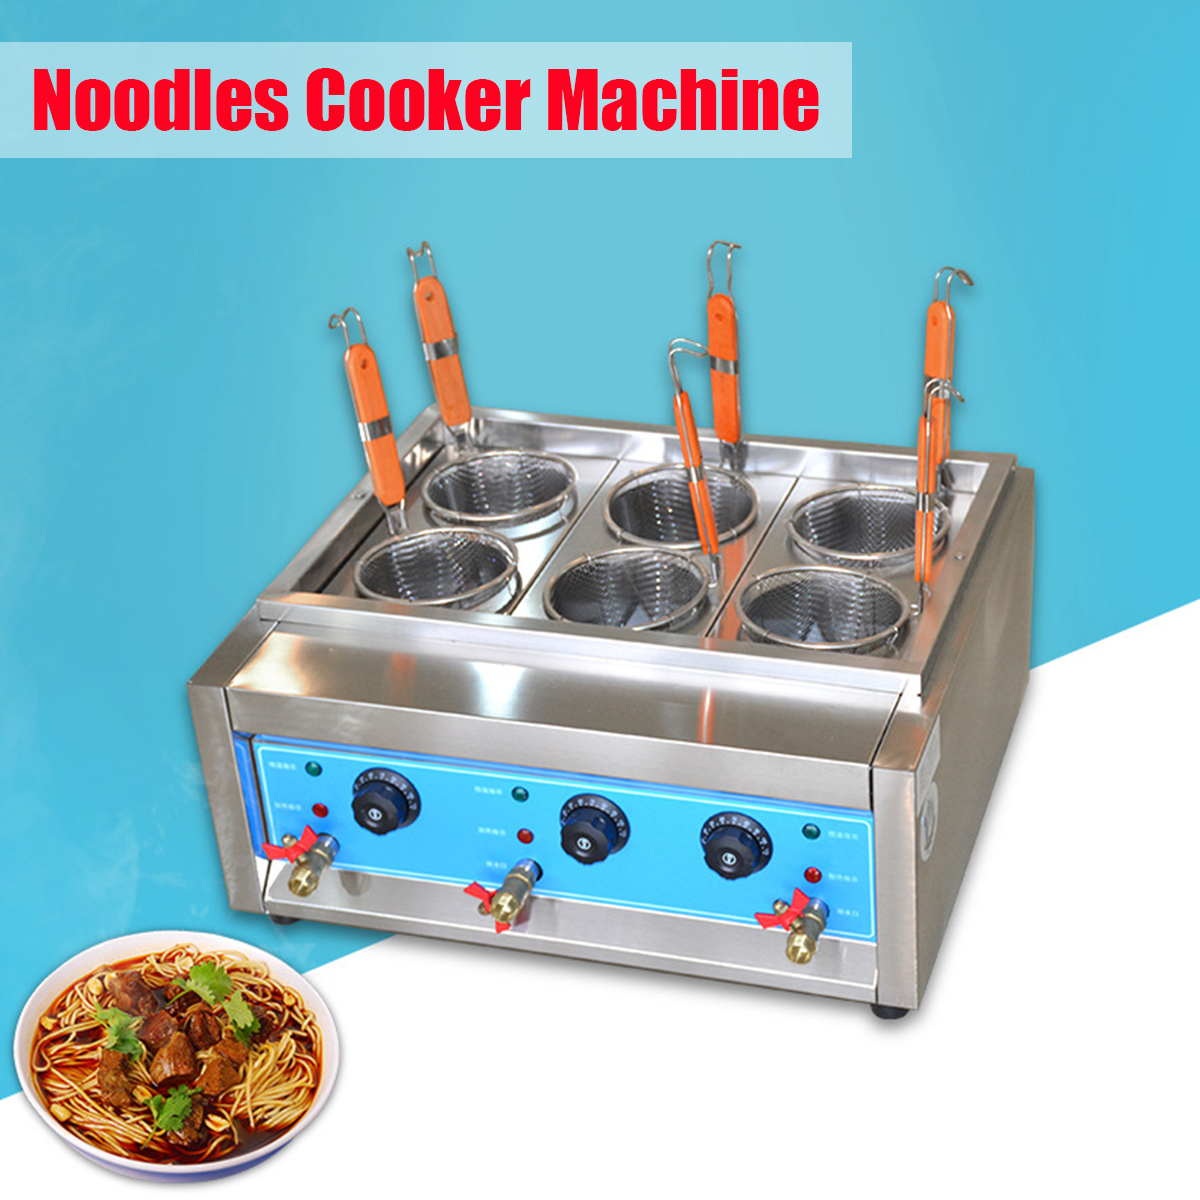 220V Multifunctional Table Electric Noodles Cooker Heating Machine Furnace 4/6 Holes Commercial Pasta Food Cooker Business Use 5b rear highway road wheel set with nylon super star wheel ts h95085 x 2pcs for 1 5 baja 5b wholesale and retail